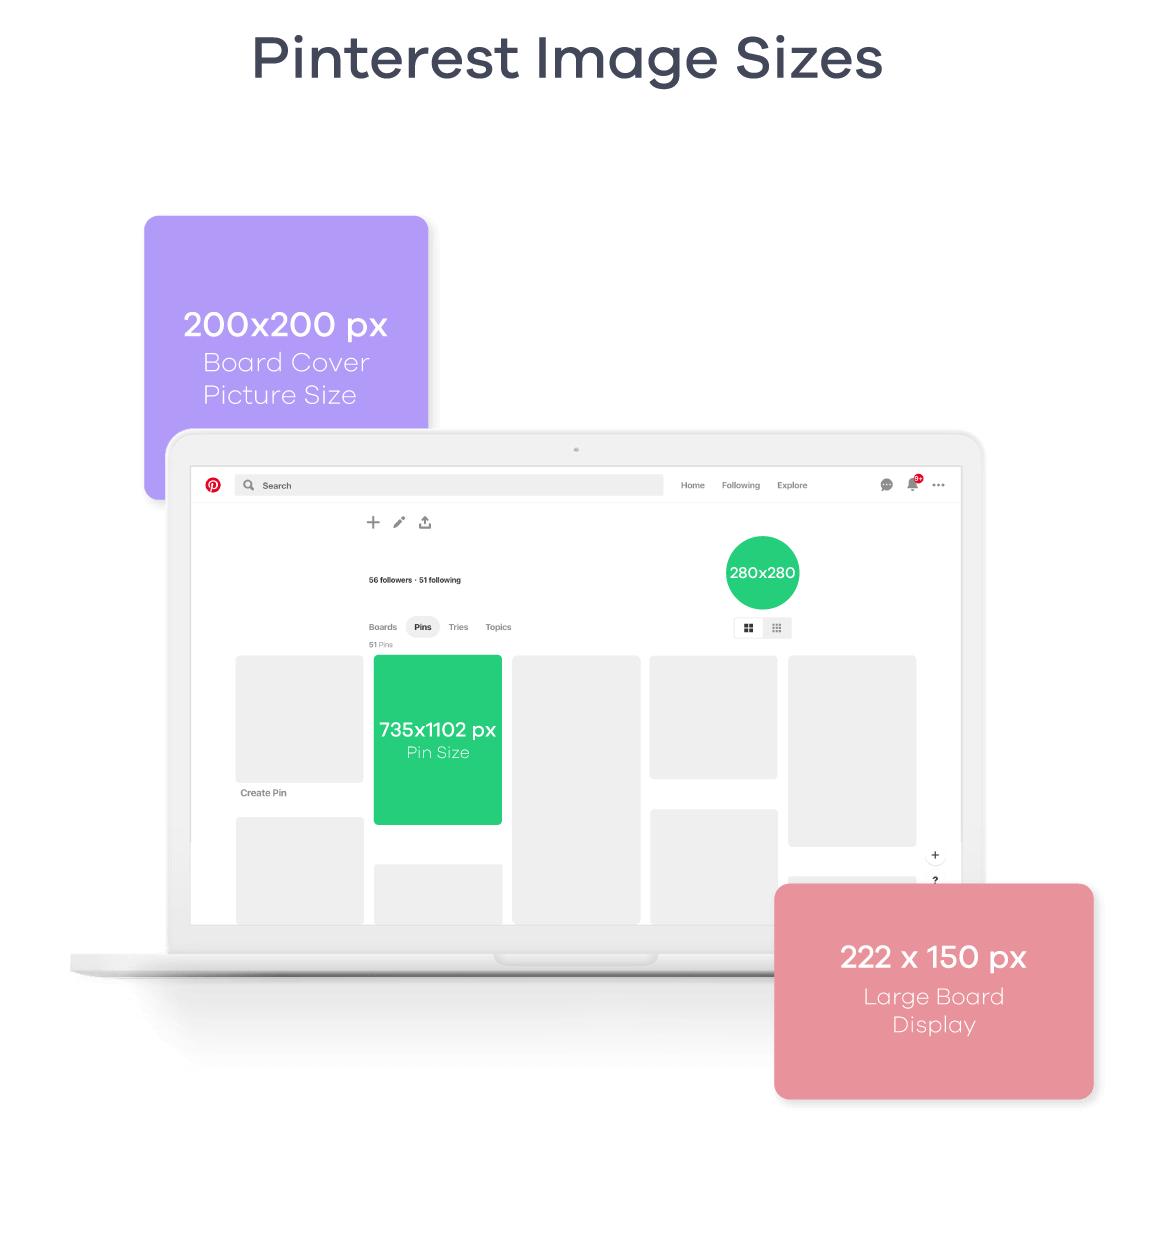 Pinterest Image Sizes 2019